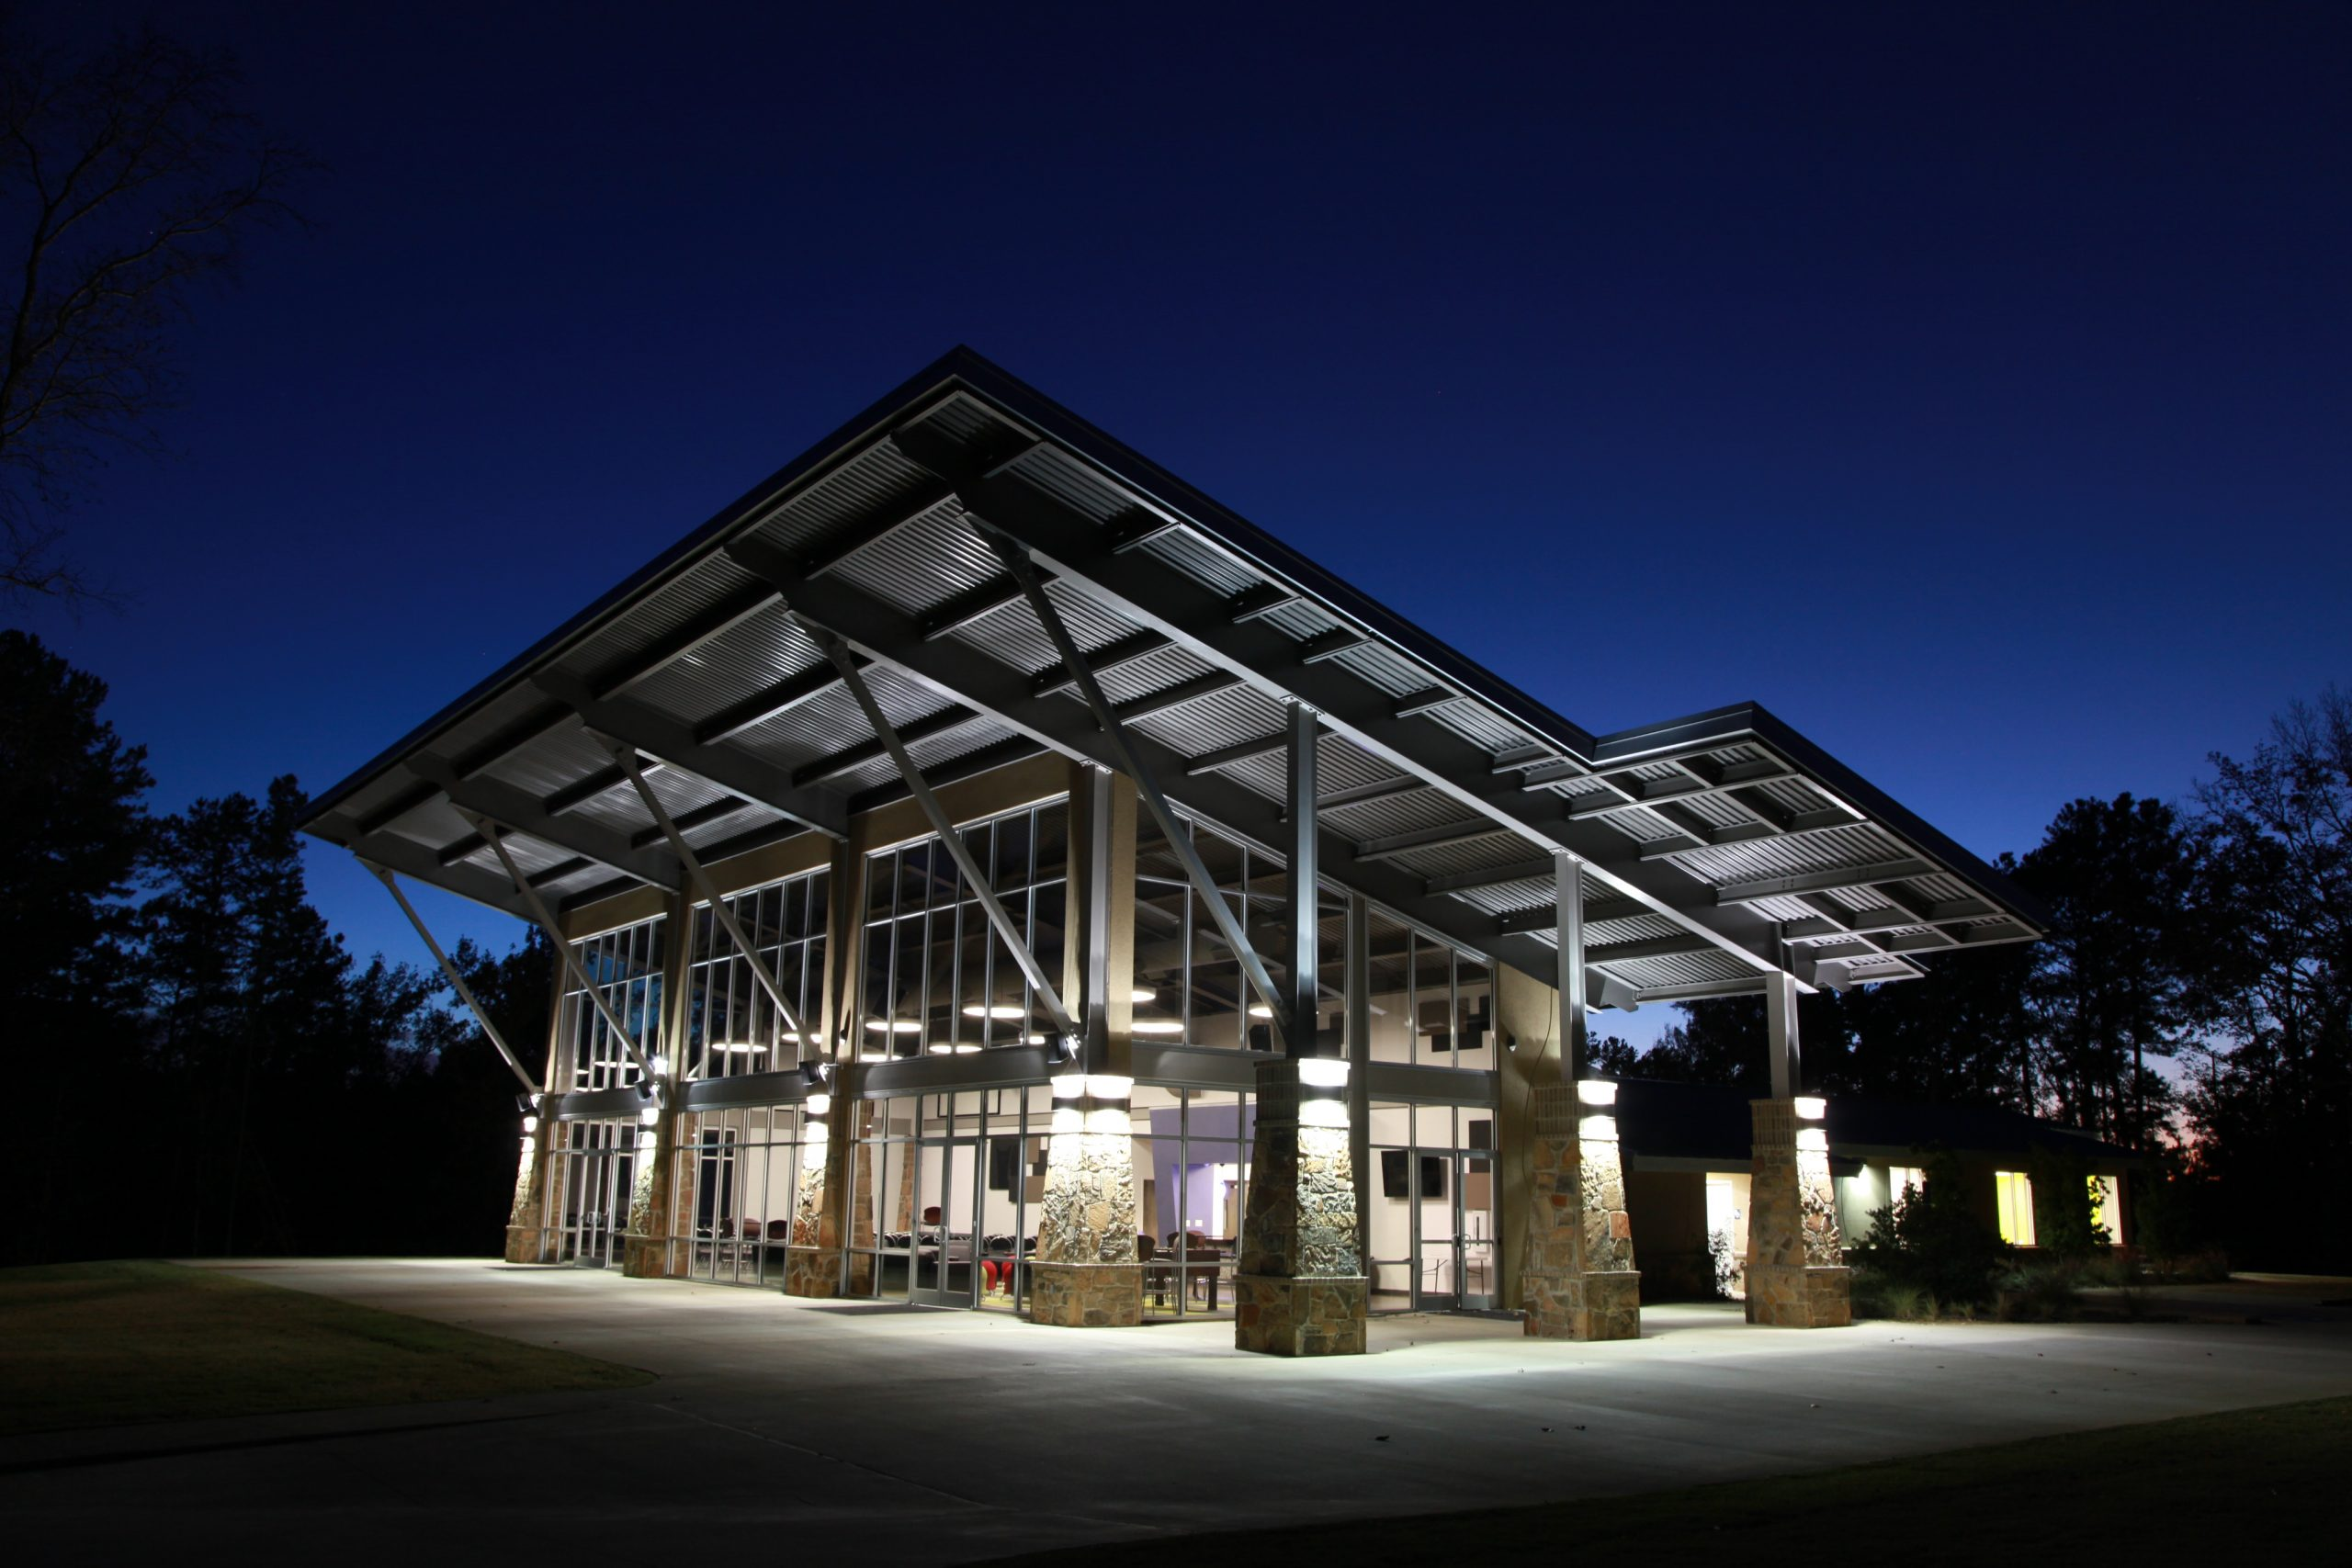 south spring baptist church youth building - tyler area architect - architect in east texas - butler architectural group - mike butler